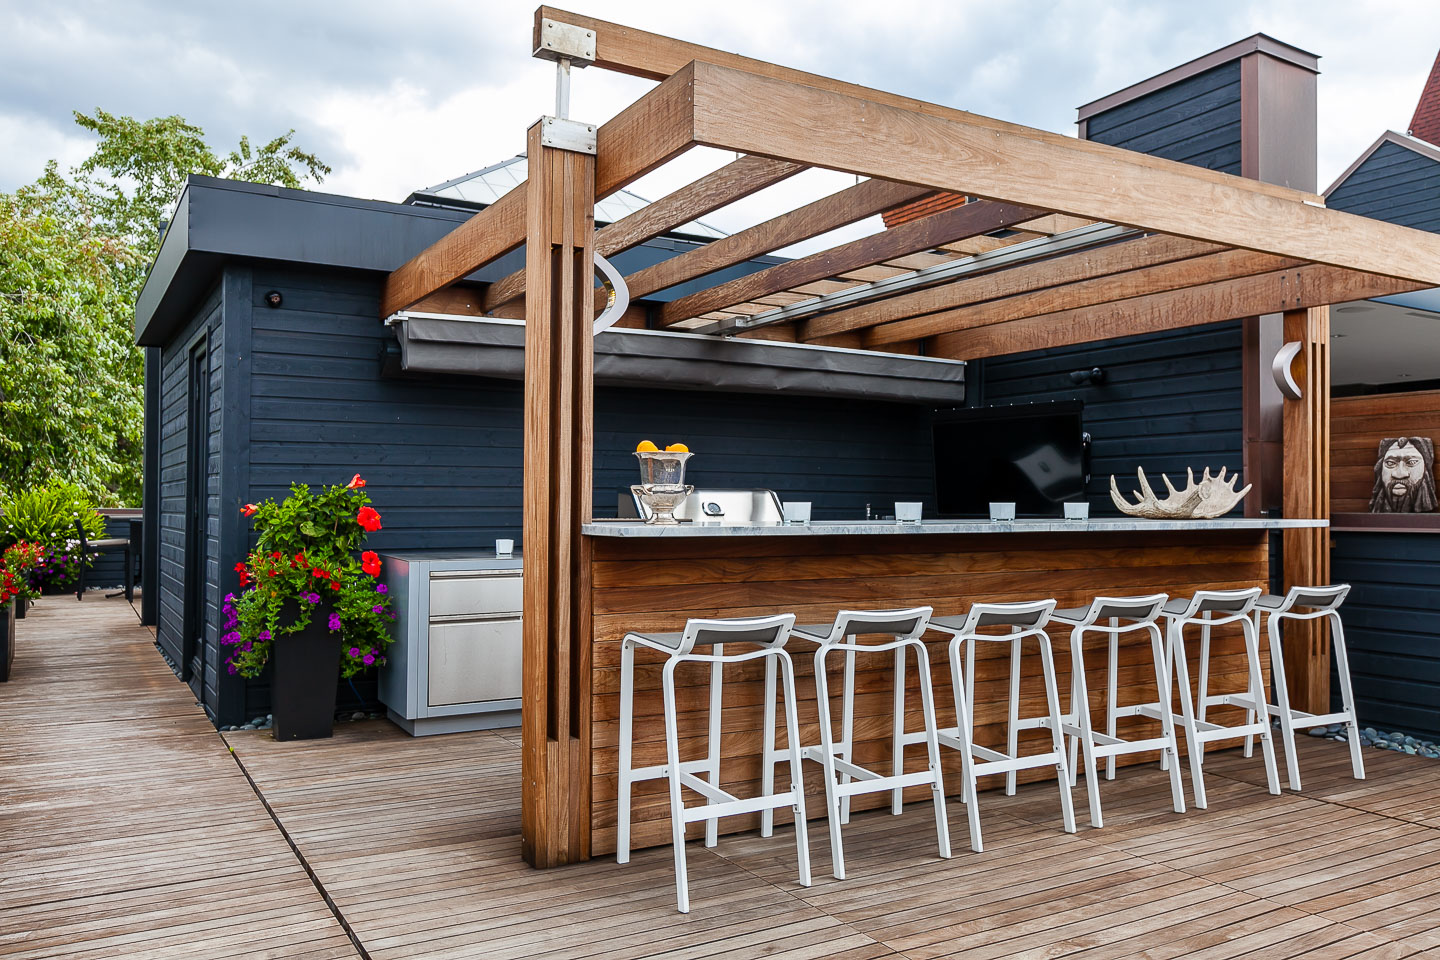 314 Palmerston Blvd - Rooftop Patio Bar | Better Dwelling on Backyard Bar With Roof id=82495